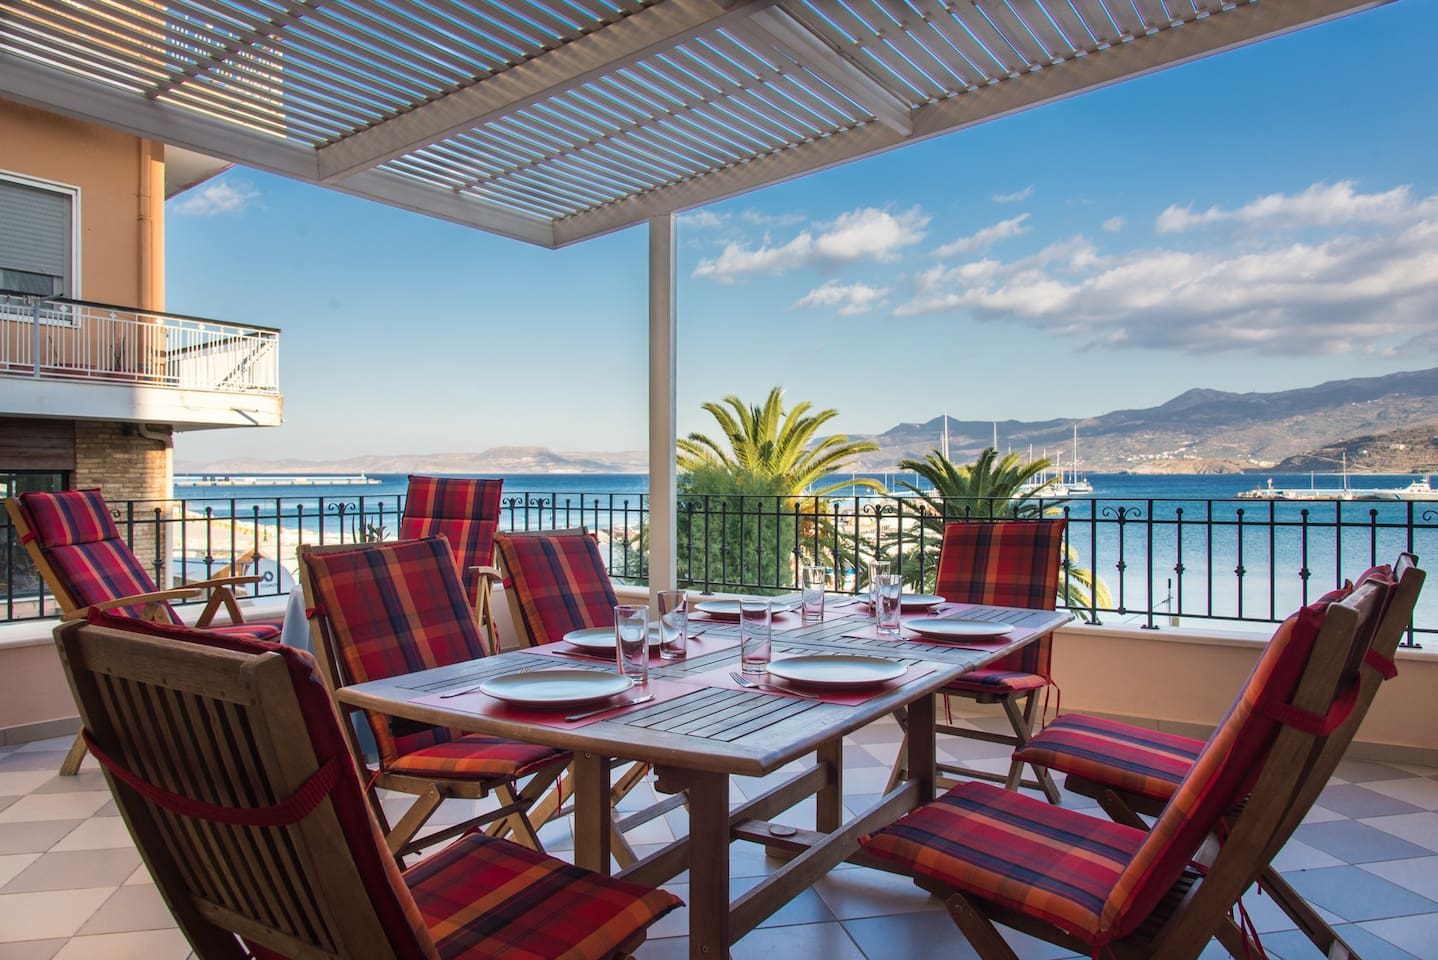 The spacious east facing terrace offers unobstructed views over Sitia's old port and the pedestrian street below. The perfect breakfast setting while soaking the morning sun.